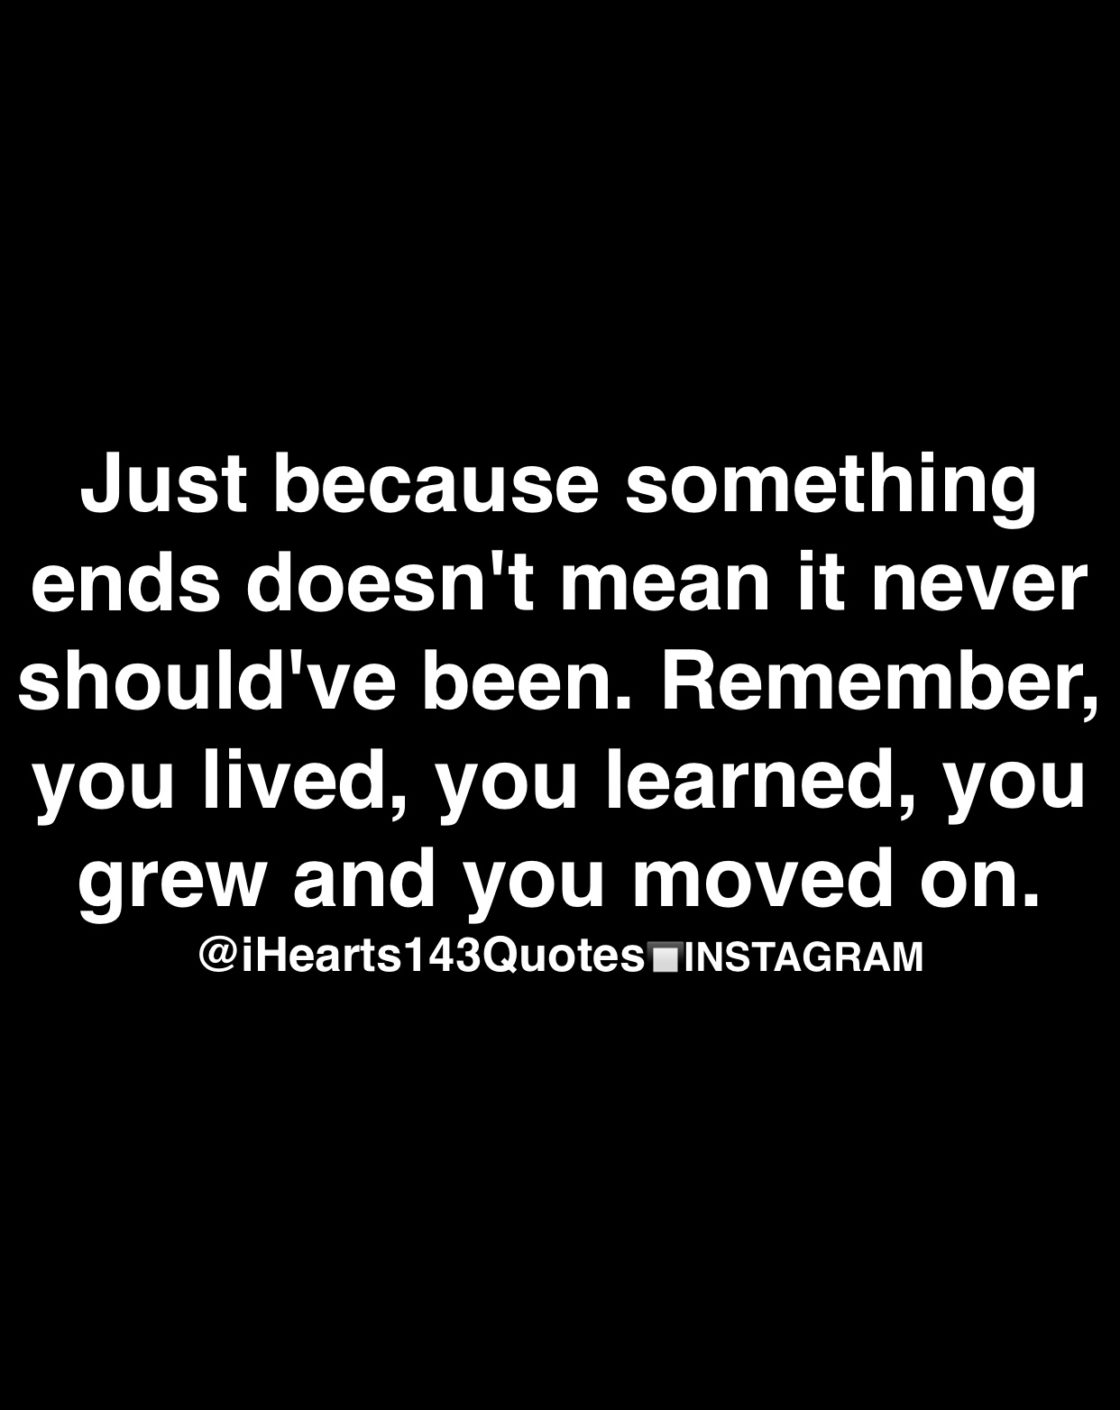 Moved On Quotes Daily Motivational Quotes  Ihearts143Quotes